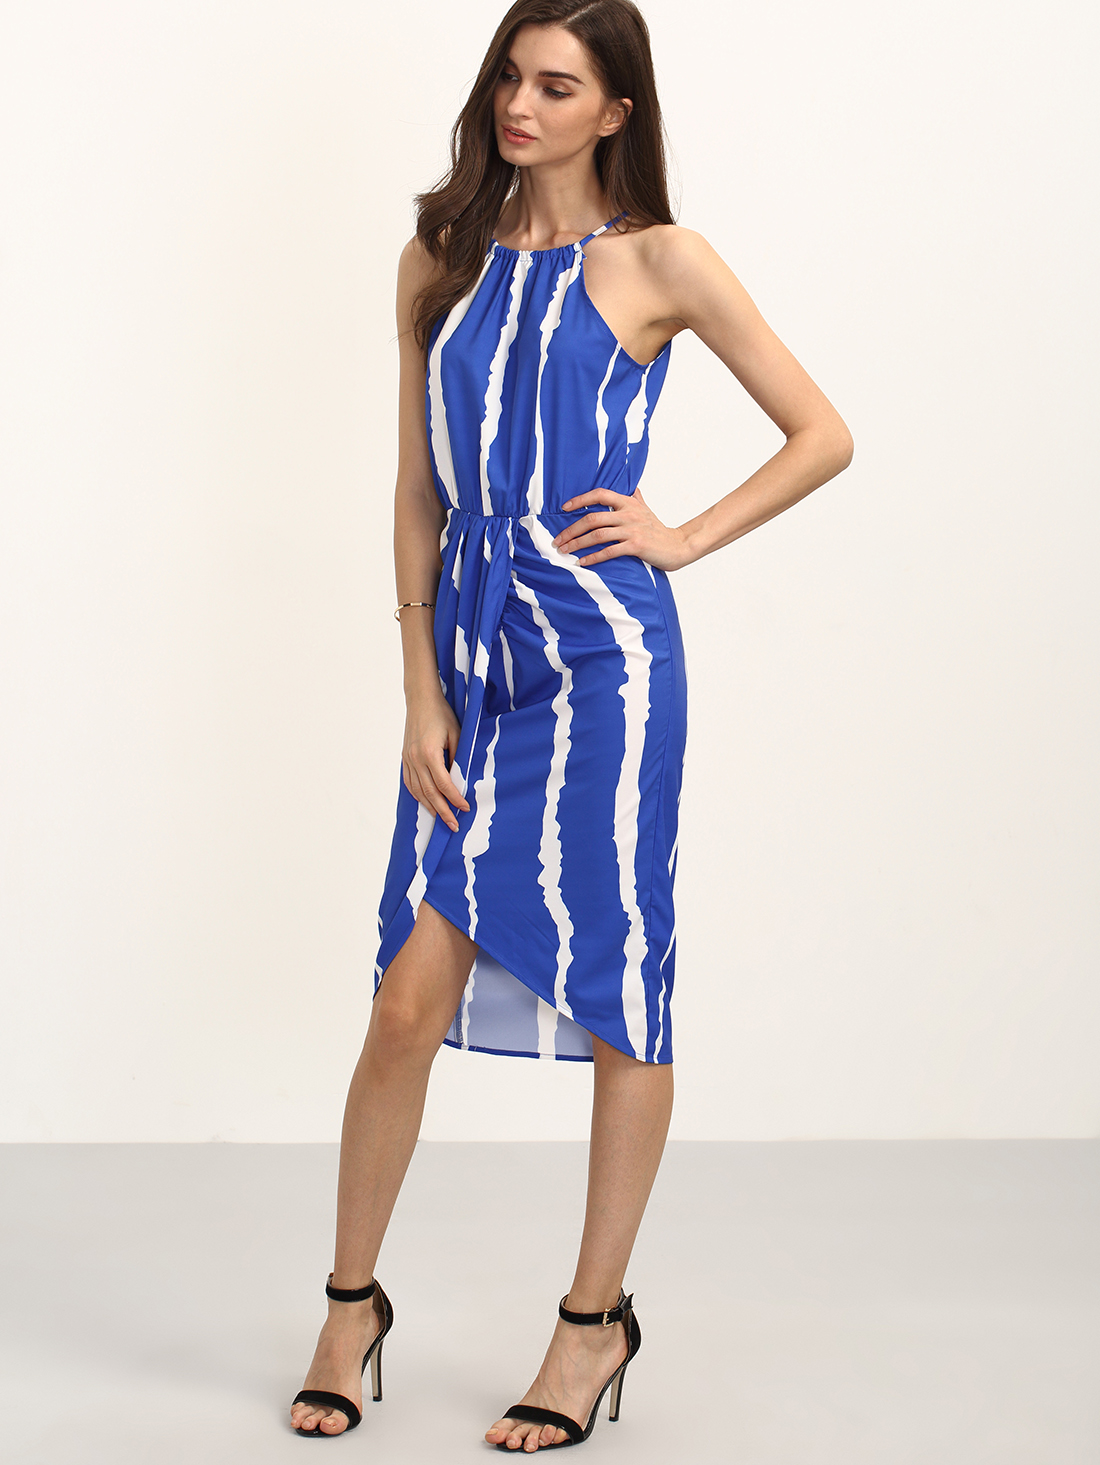 shein royal blue dress